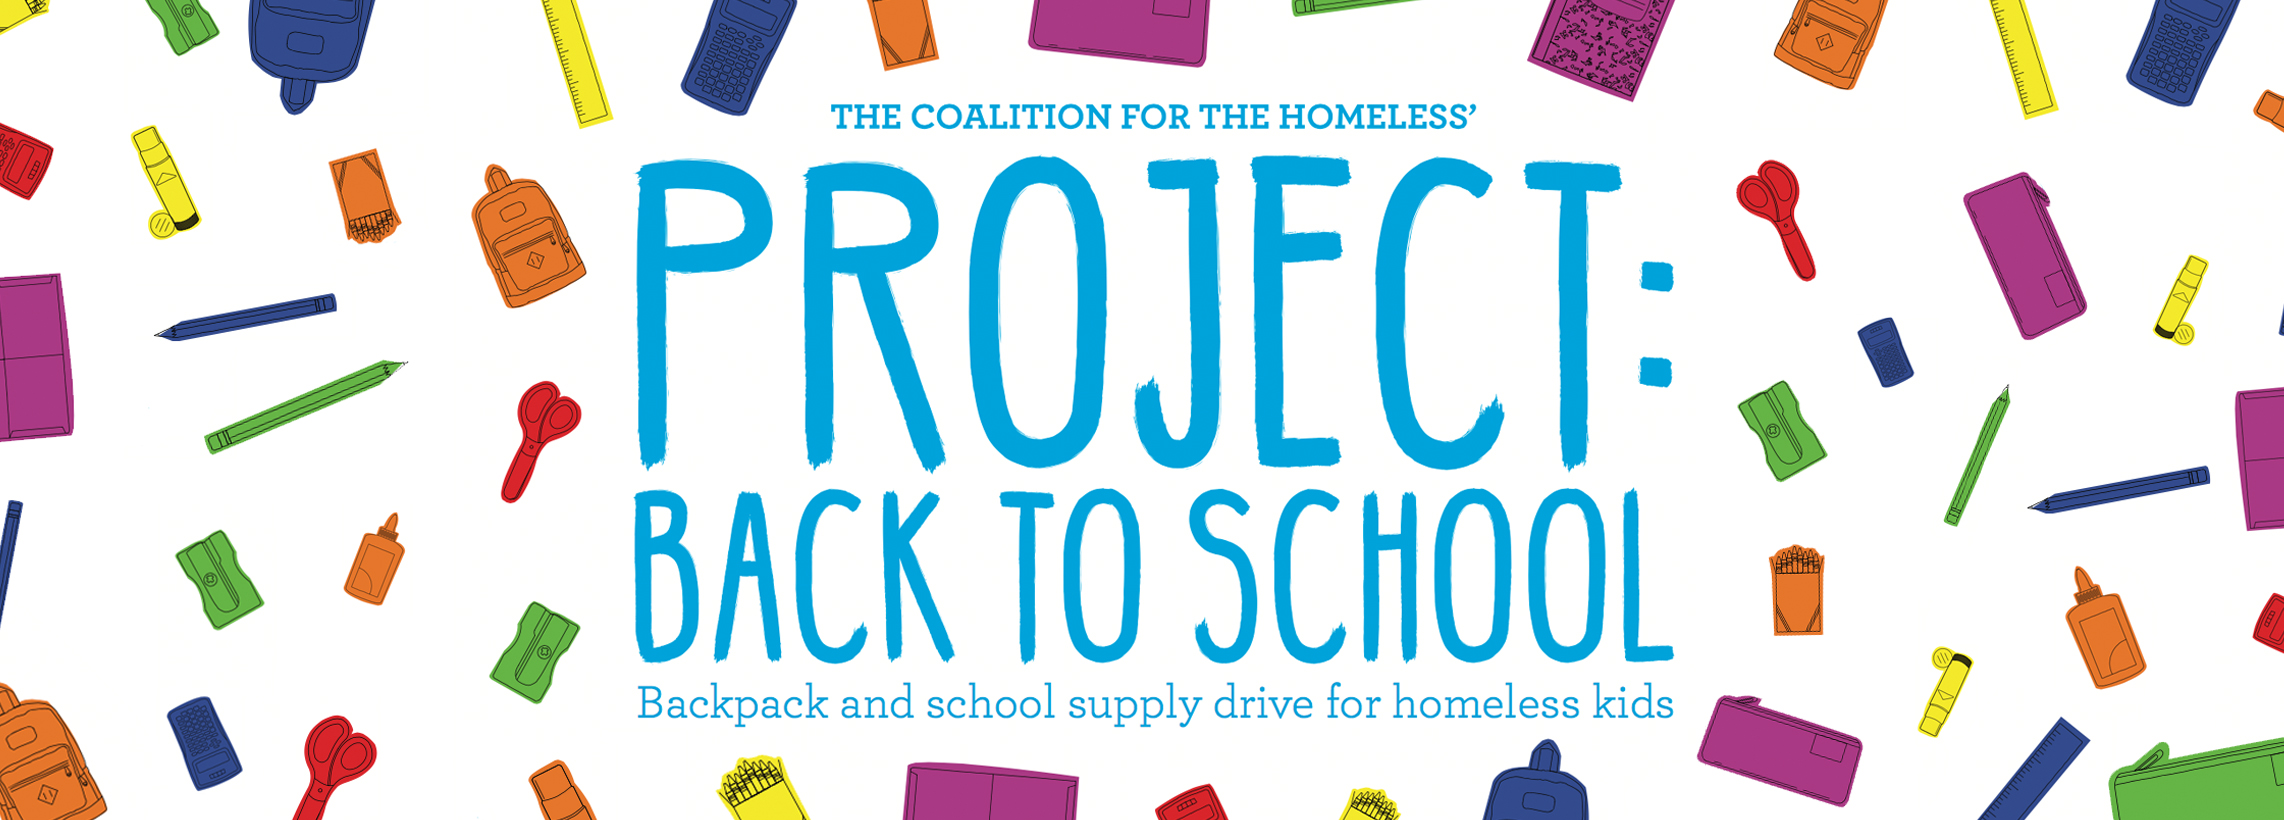 2016 Project: Back to School